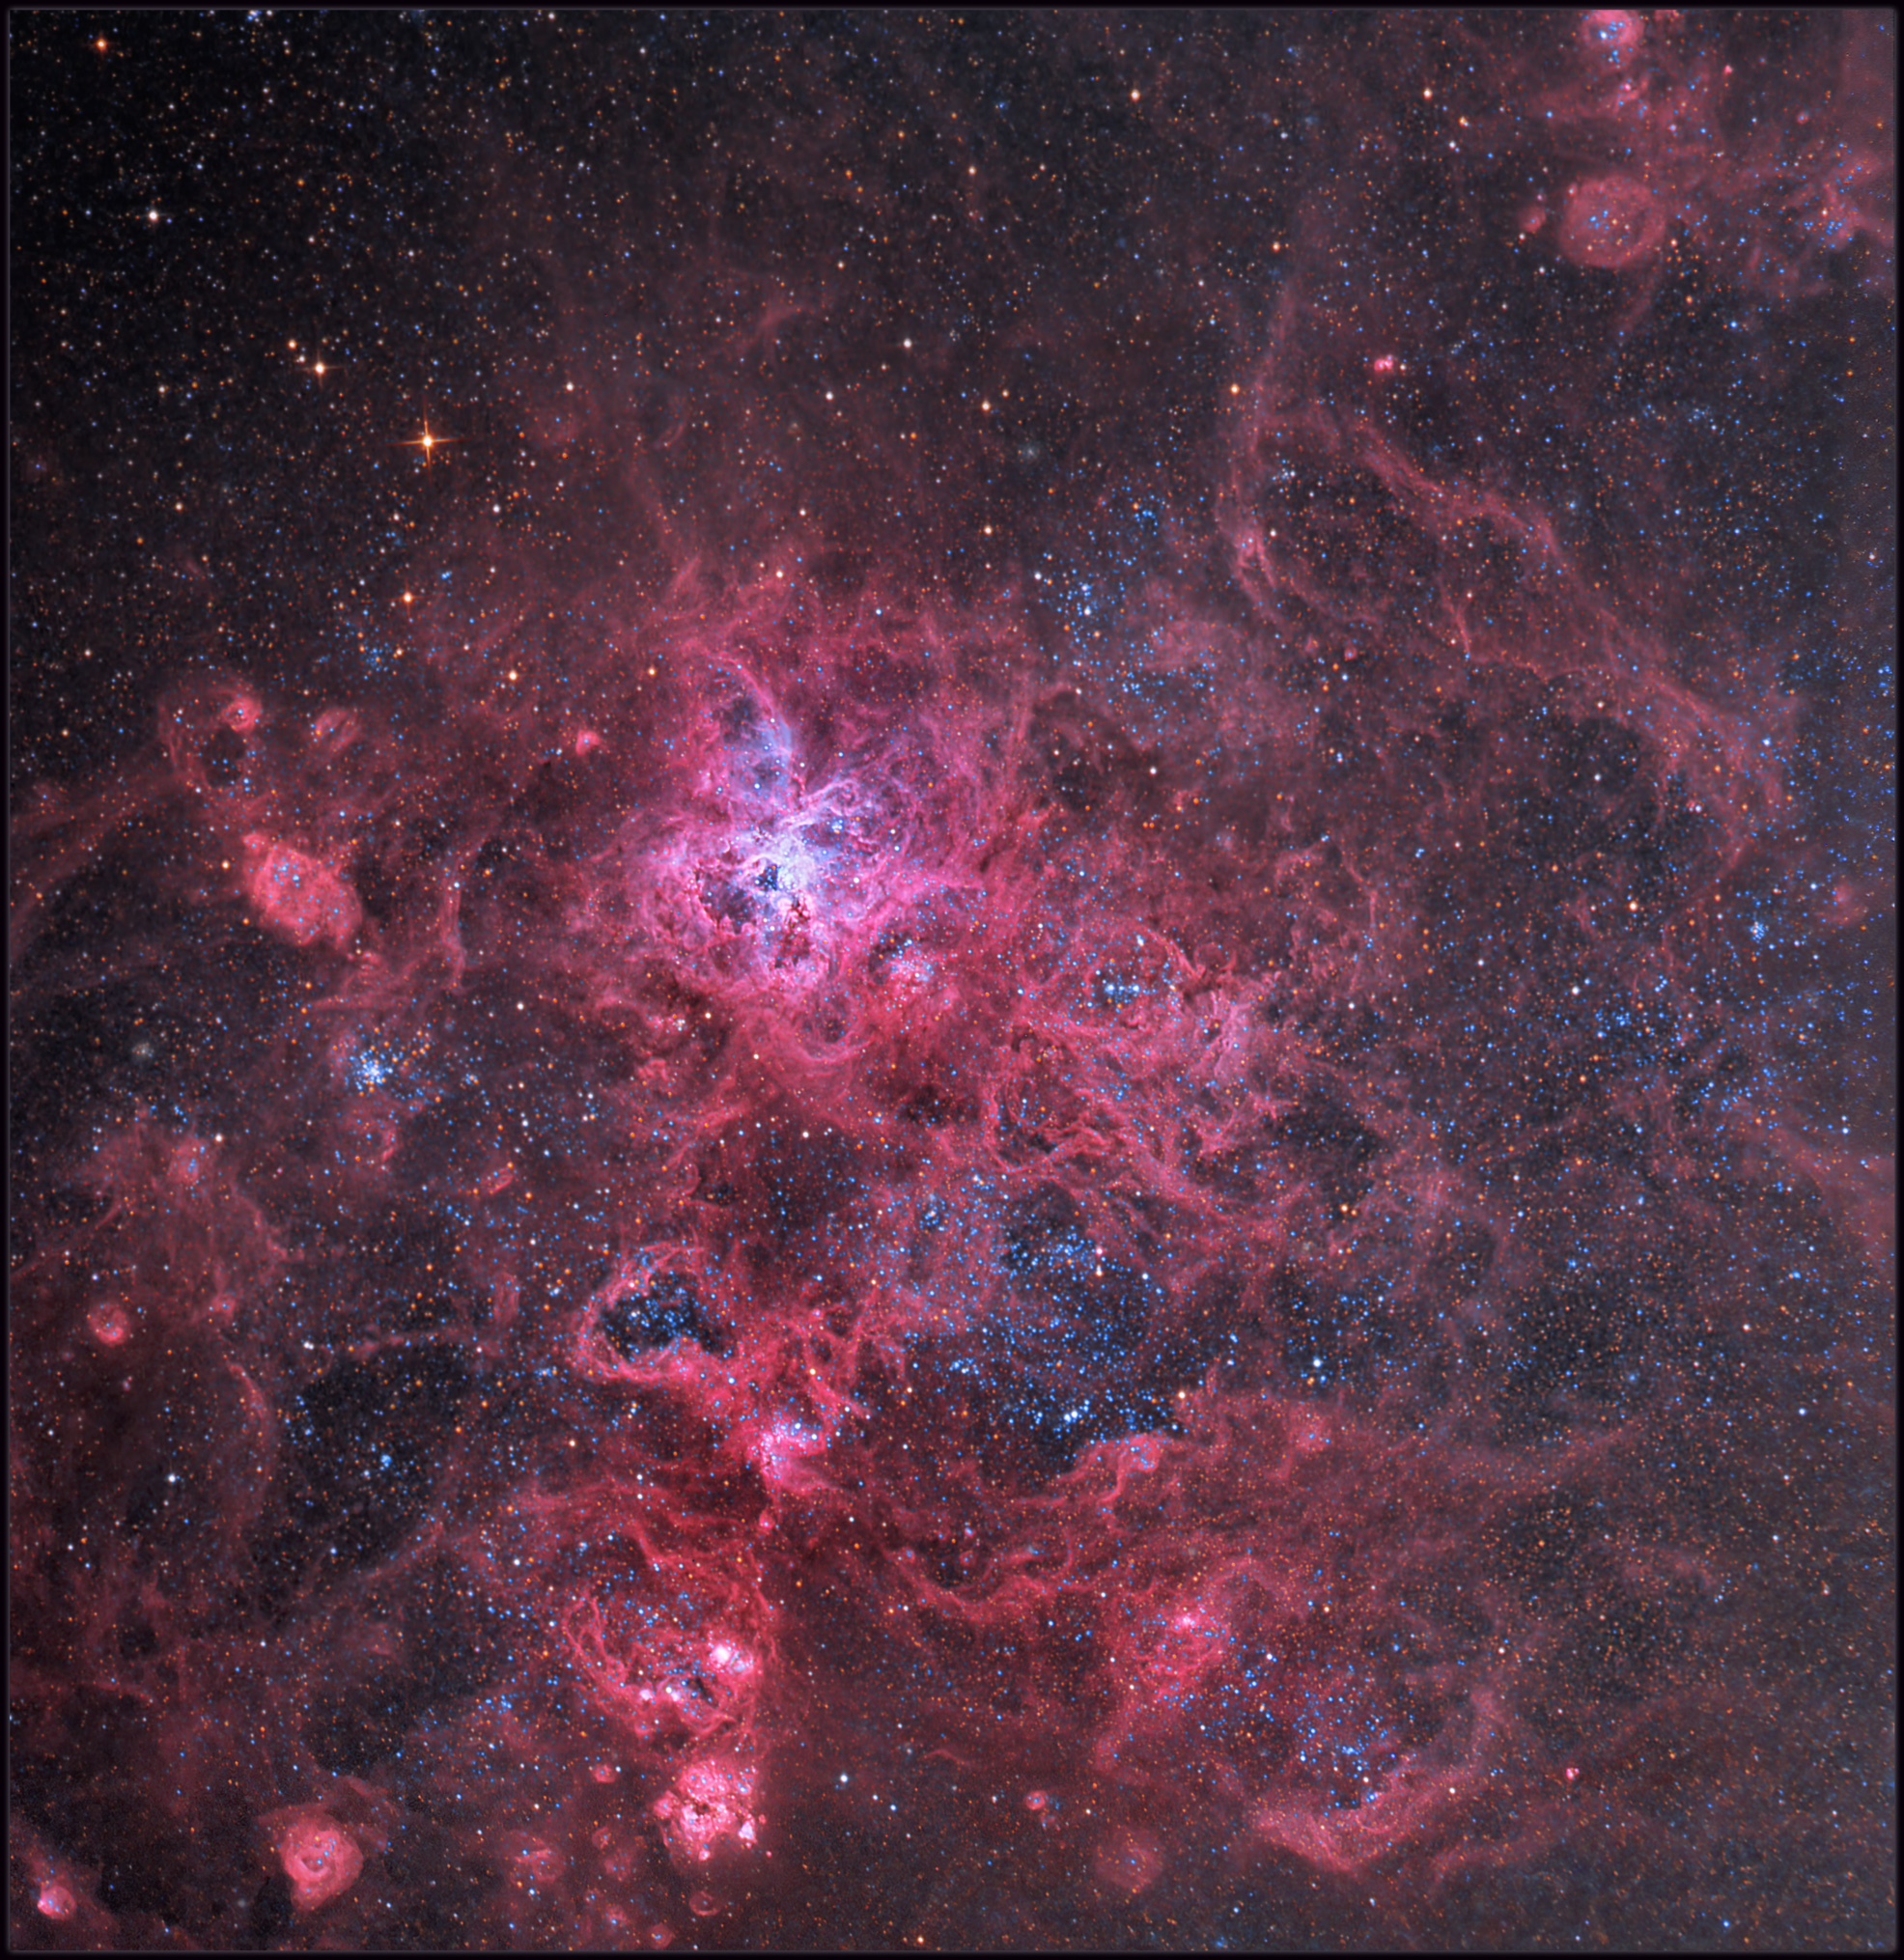 The Tarantula Nebula - NGC 2070